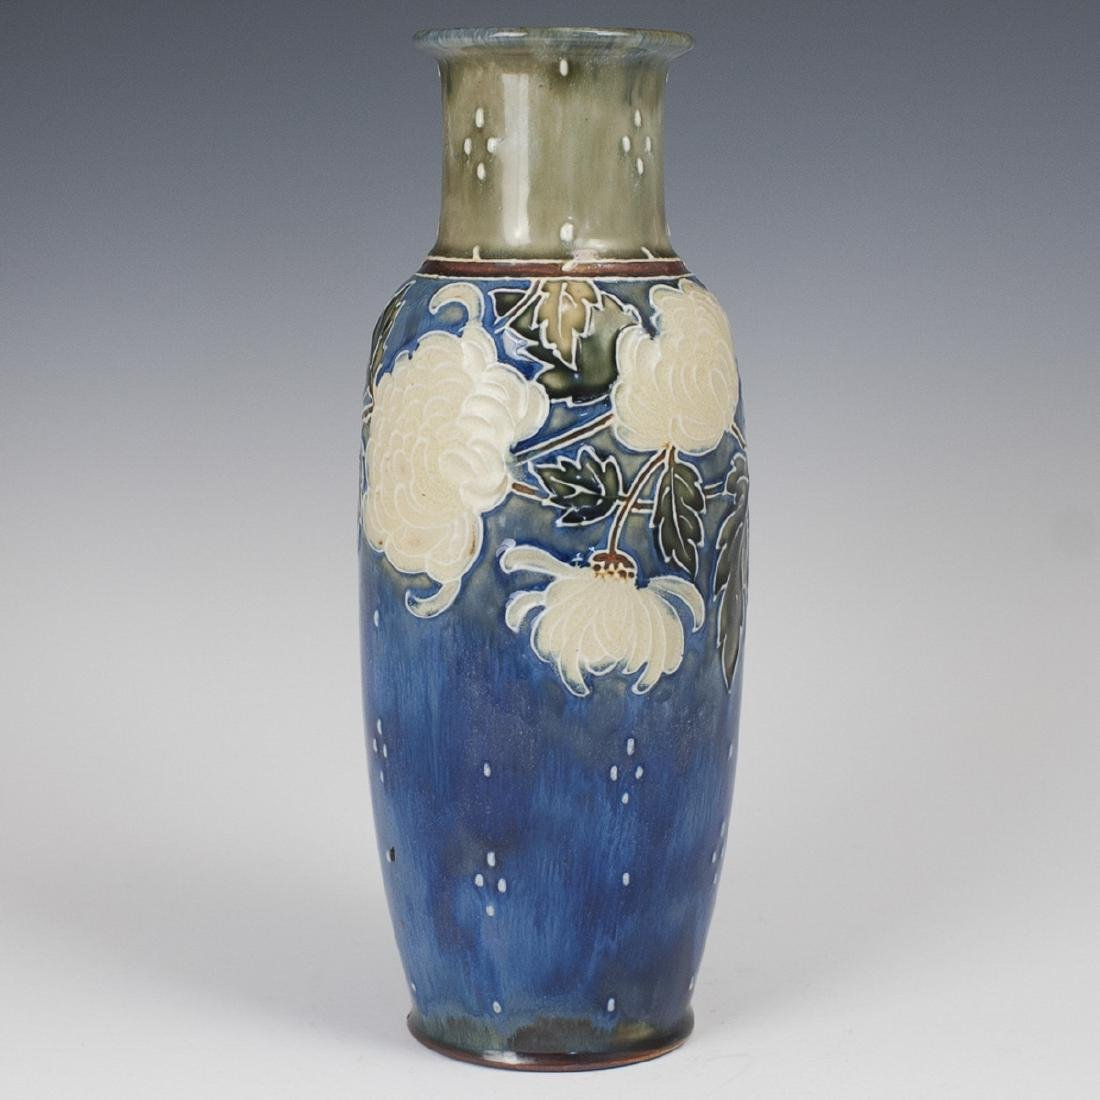 Royal Doulton Glazed Stoneware Vase